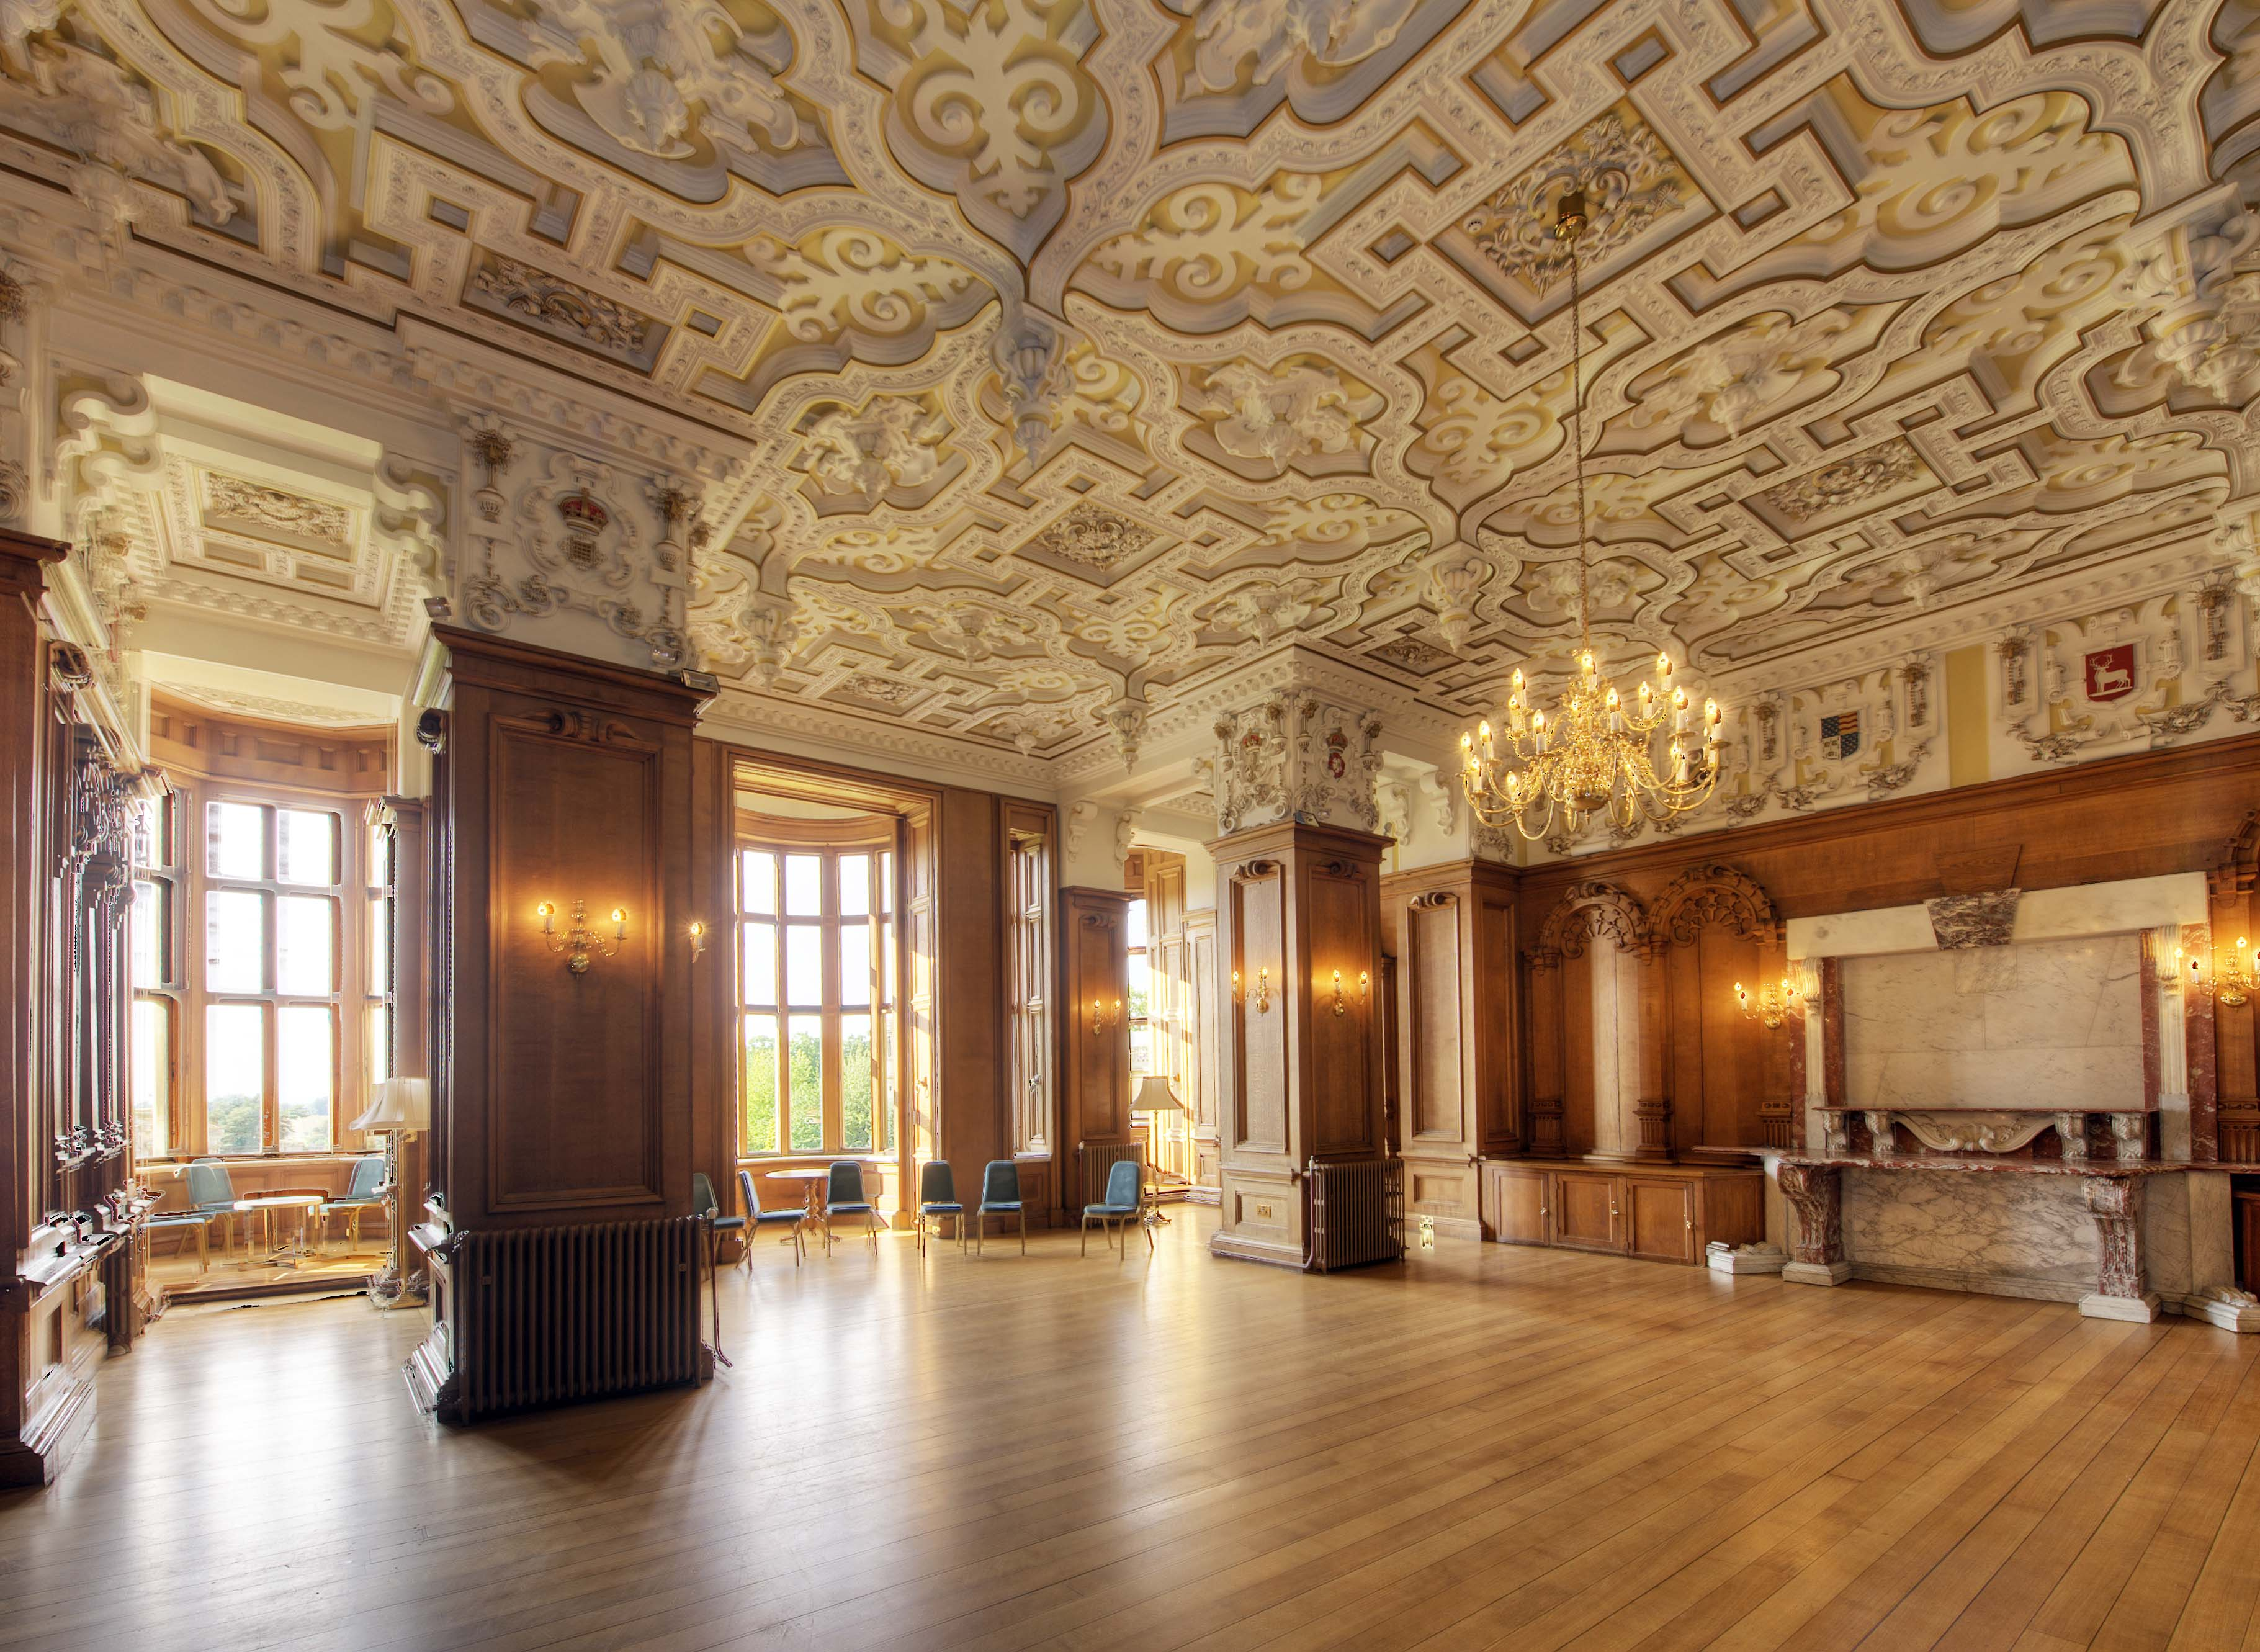 State Dining Room Harlaxton Manor Archives